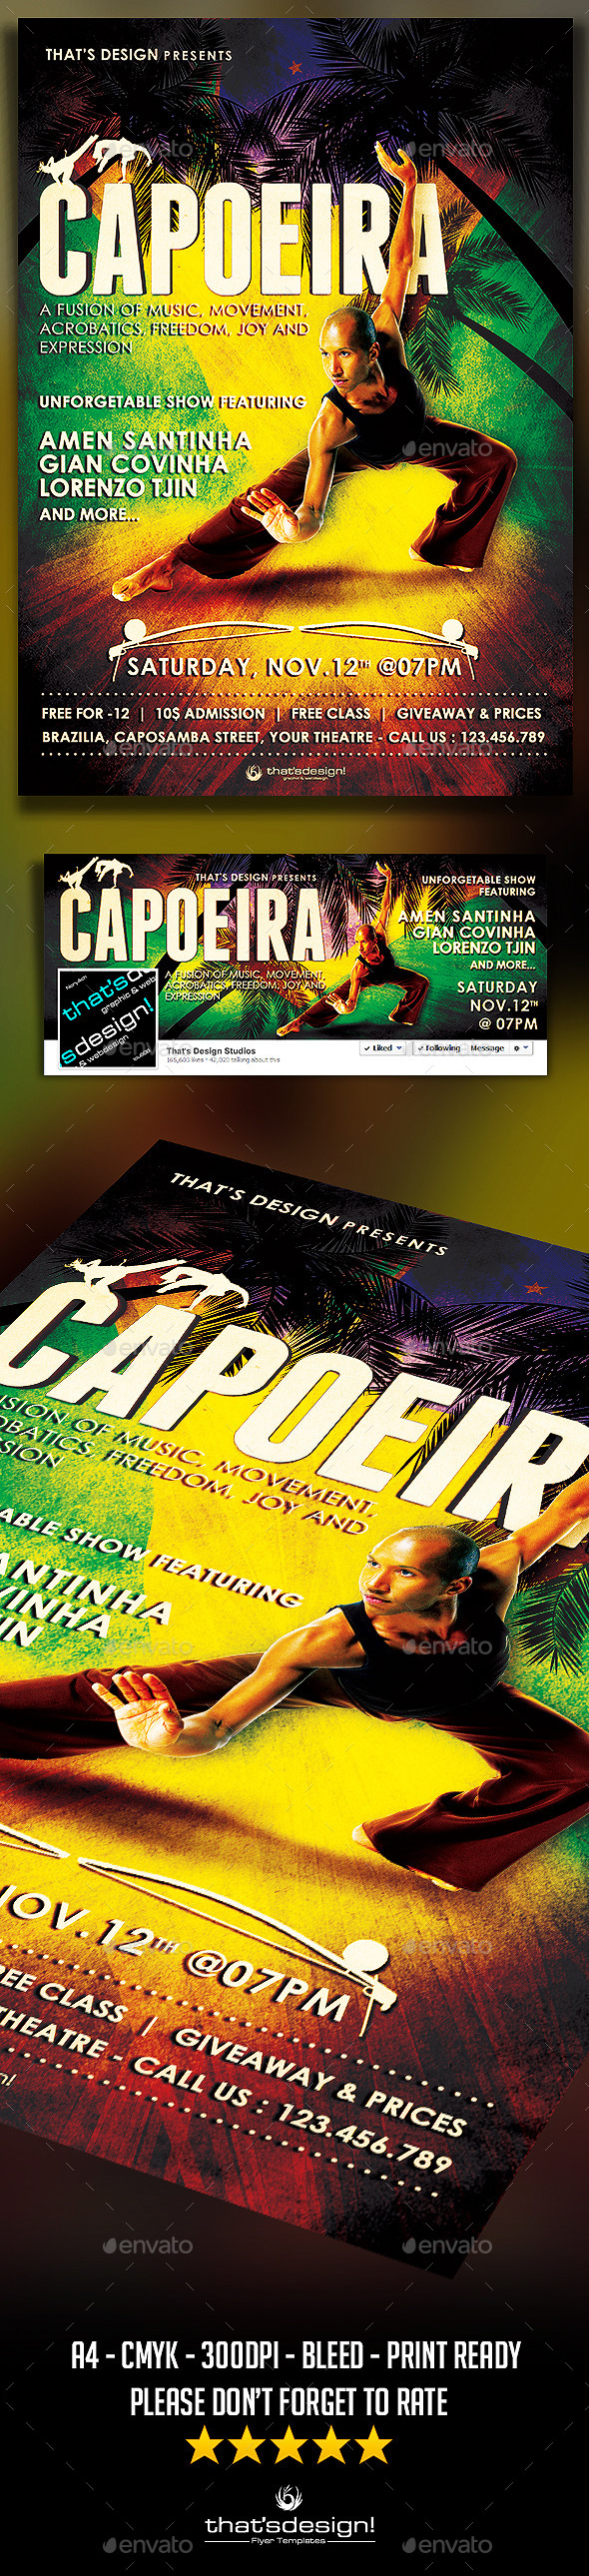 Capoeira Flyer Template - Concerts Events